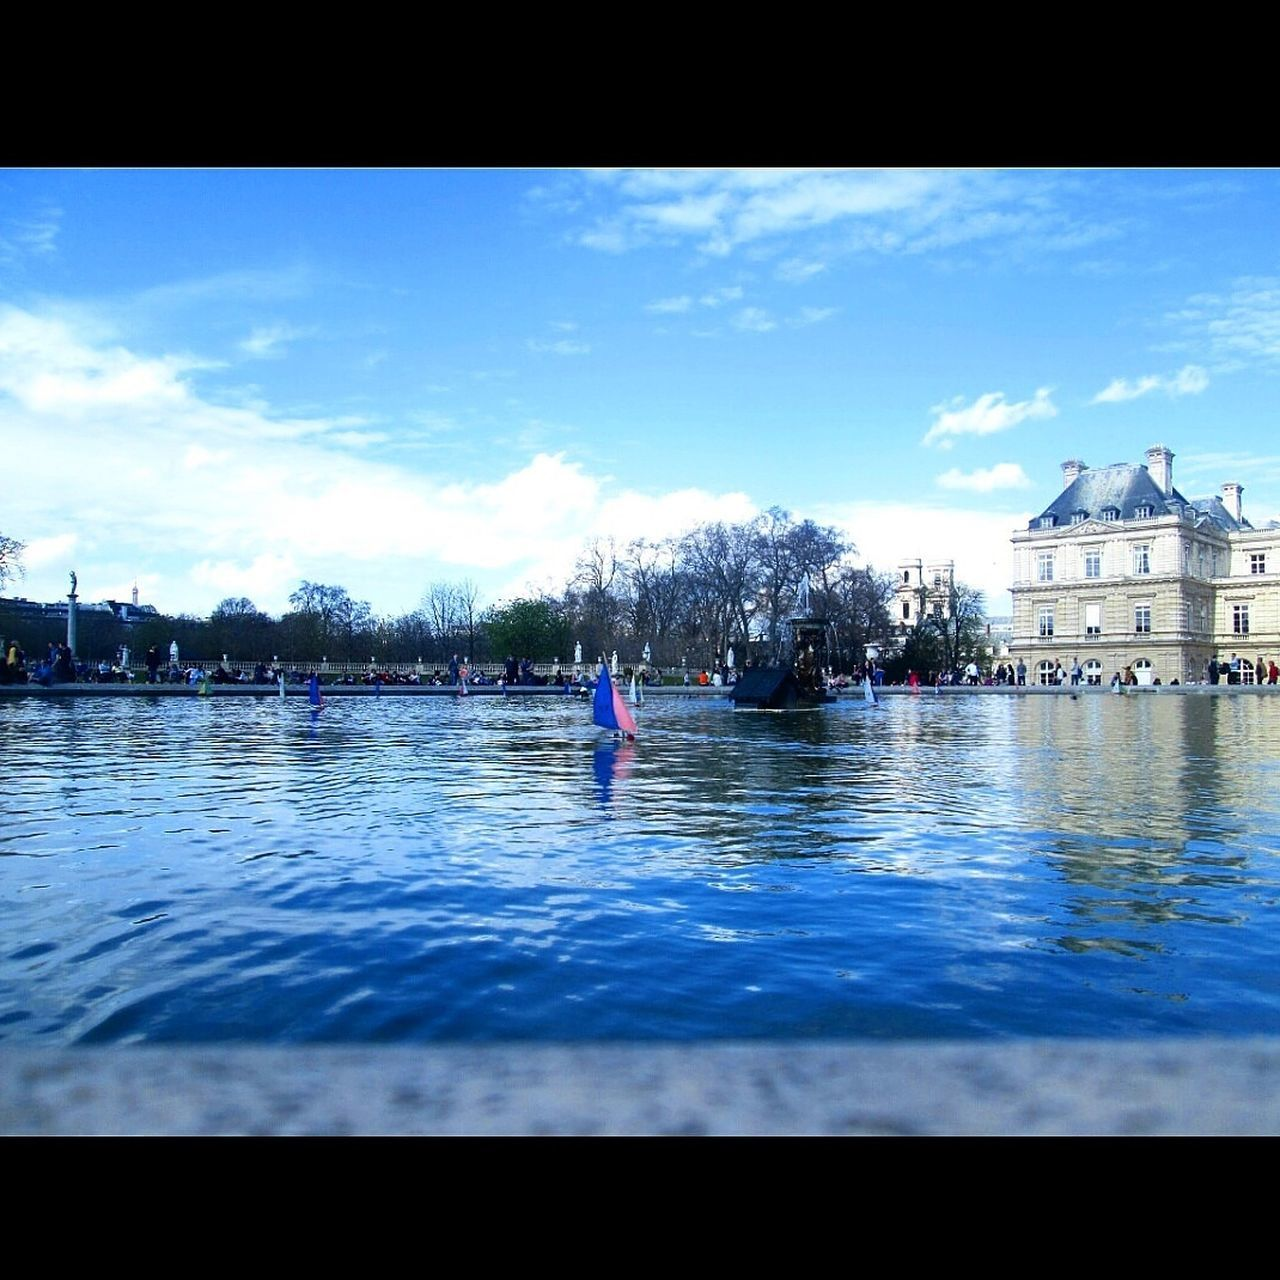 water, architecture, built structure, building exterior, sky, real people, day, outdoors, blue, one person, tree, nature, people